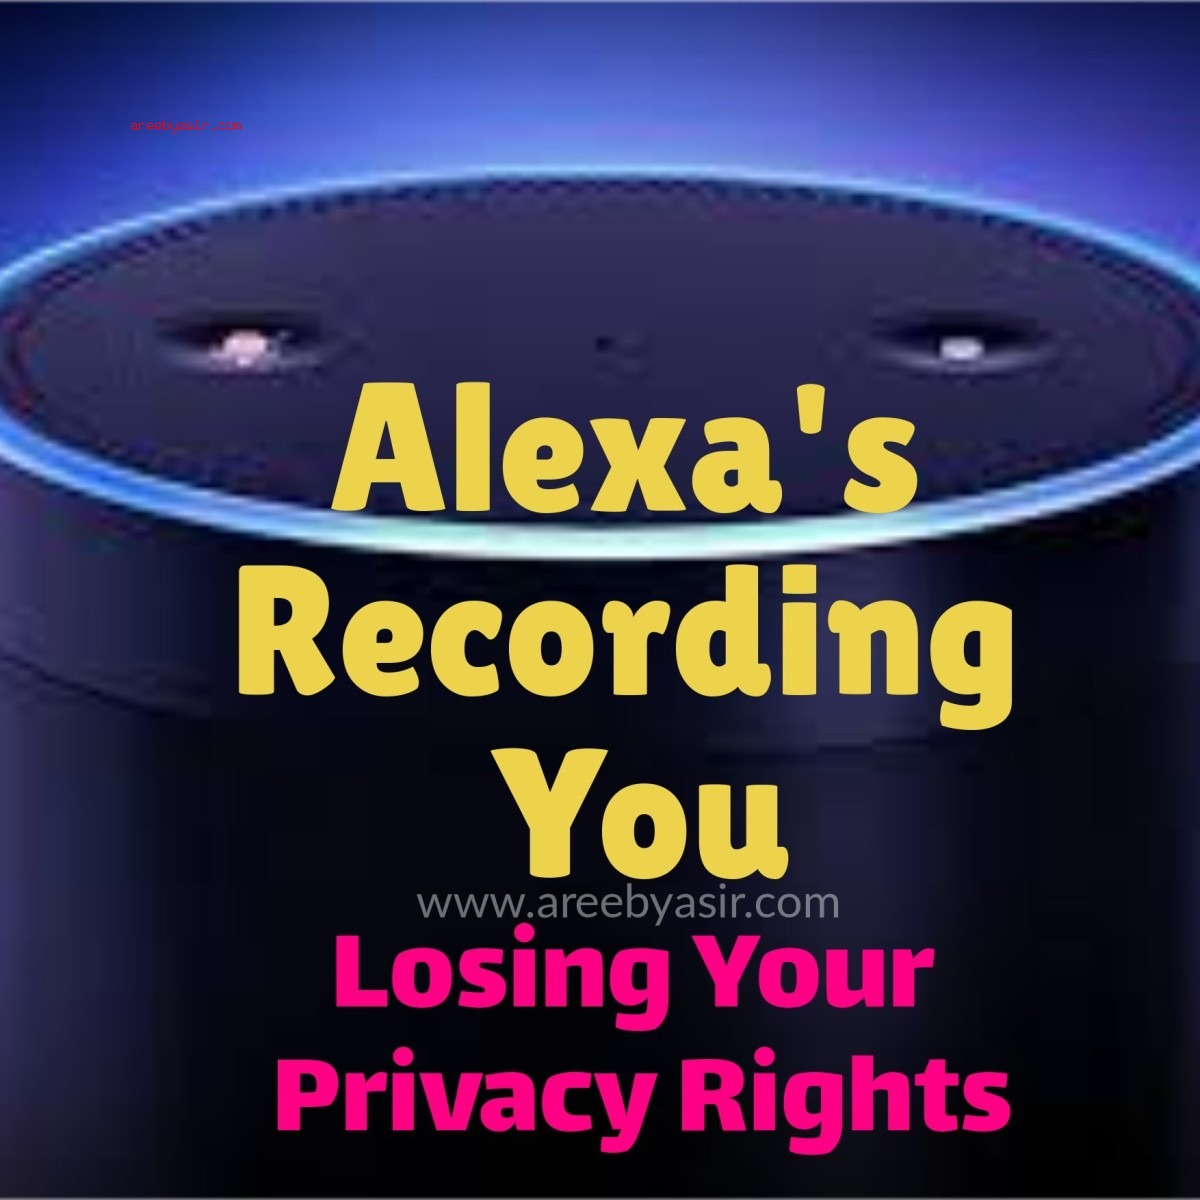 Amazon's Alexa AI Assistant Spies On You!